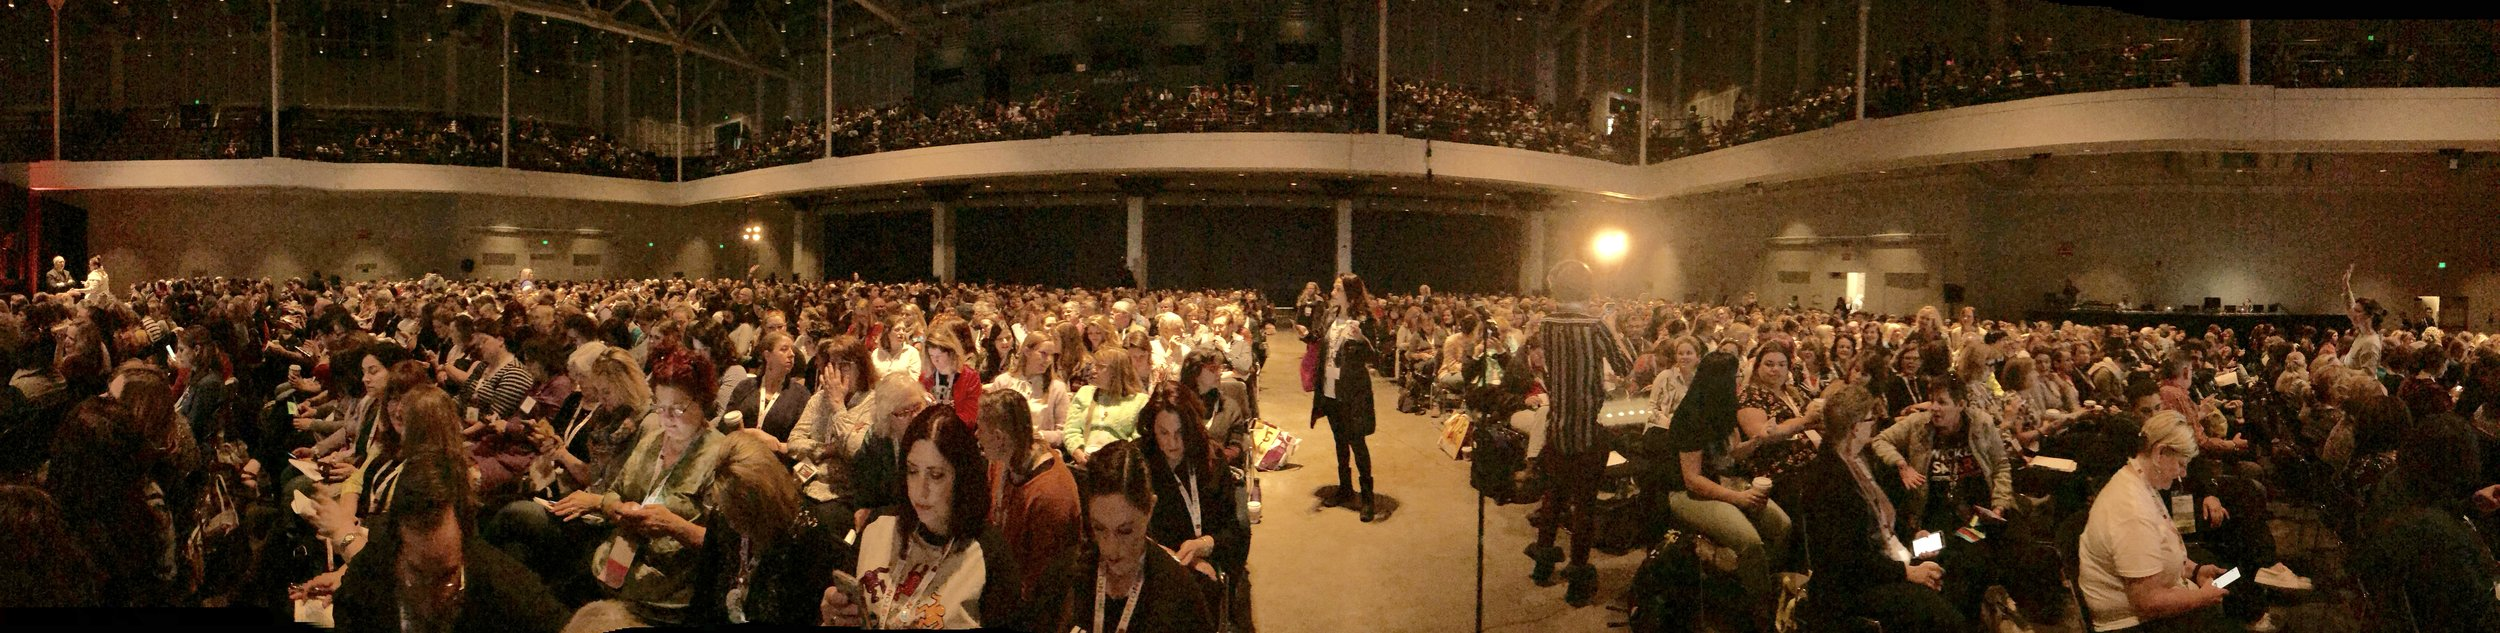 Photo of NAEA 2019 crowd before hearing Howard Gardner. Photo by Melody Weintraub. Do not use without permission.